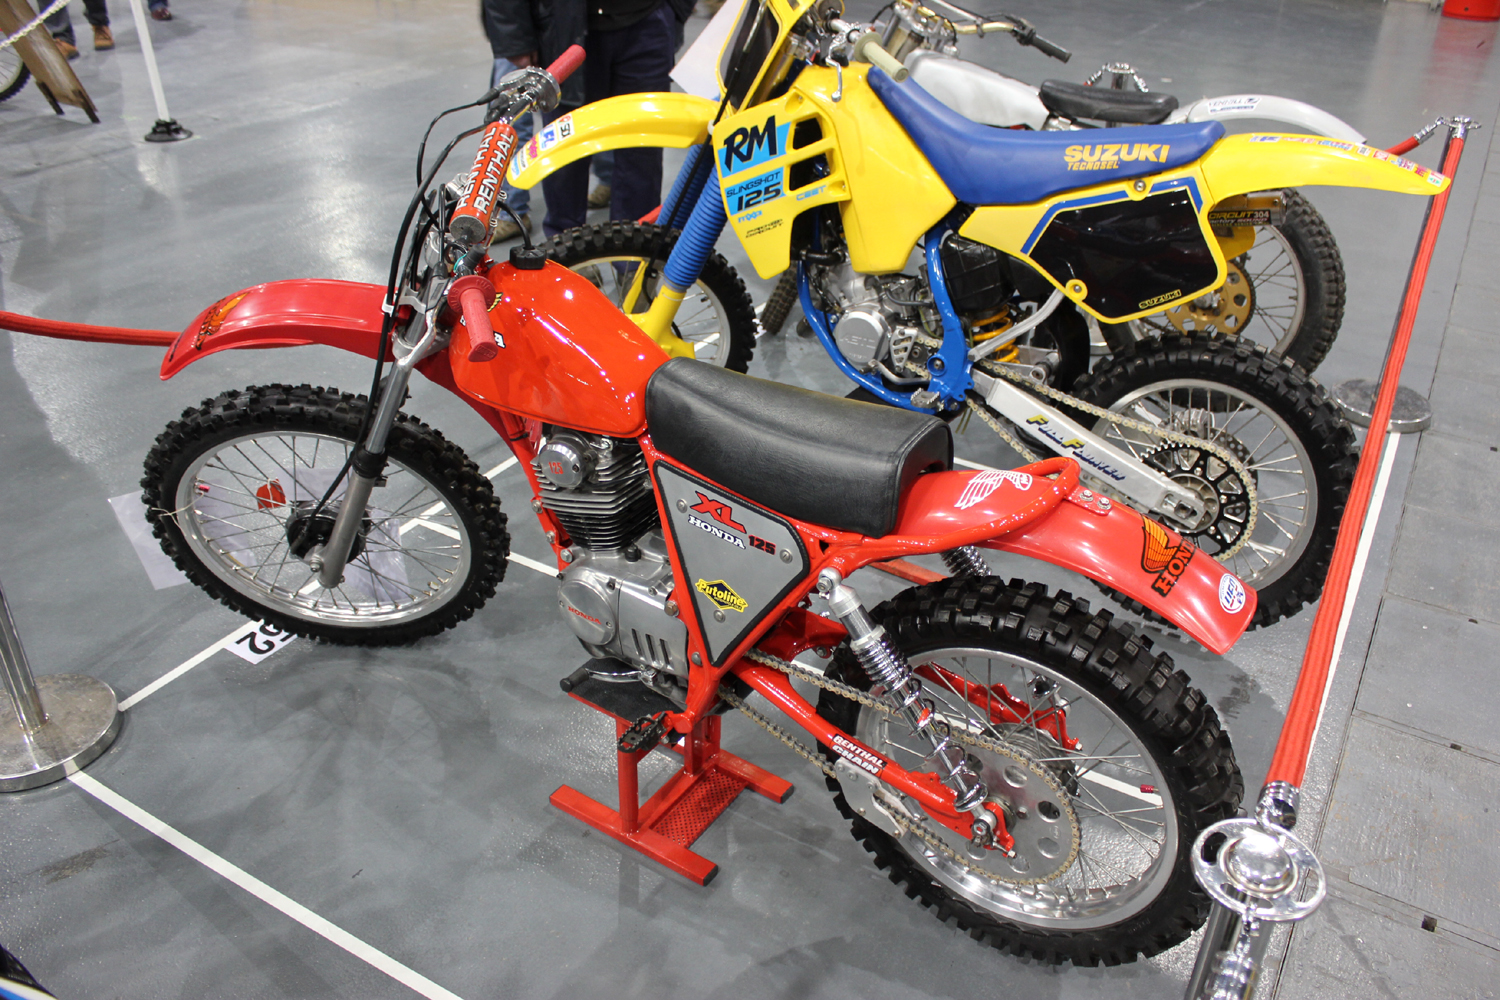 classicdirtbikerider.com-photo by Mr J-2015 Telford classic dirt bike show-HONDA XL125